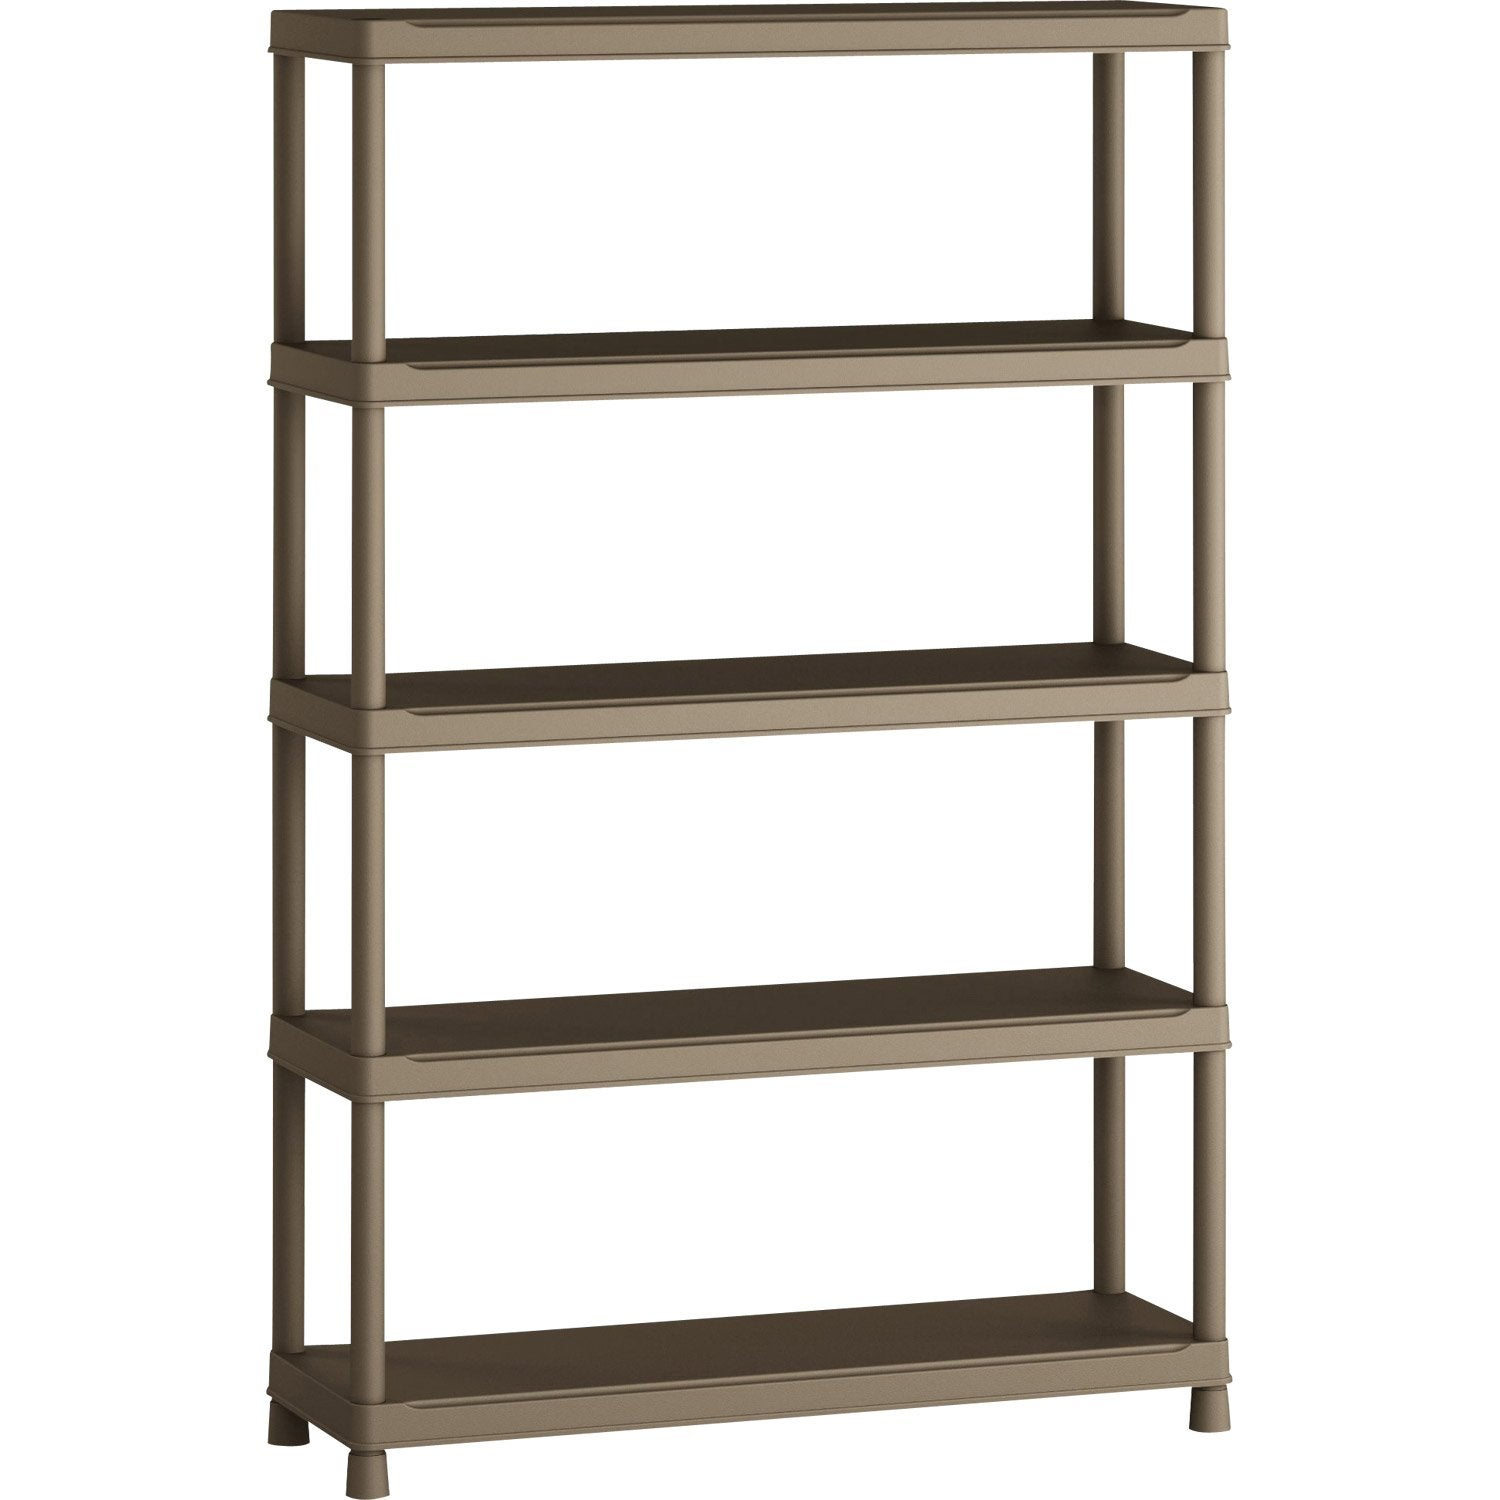 Etag re en r sine 5 tablettes spaceo h181xl120xp40 cm leroy merlin - Etagere bois leroy merlin ...